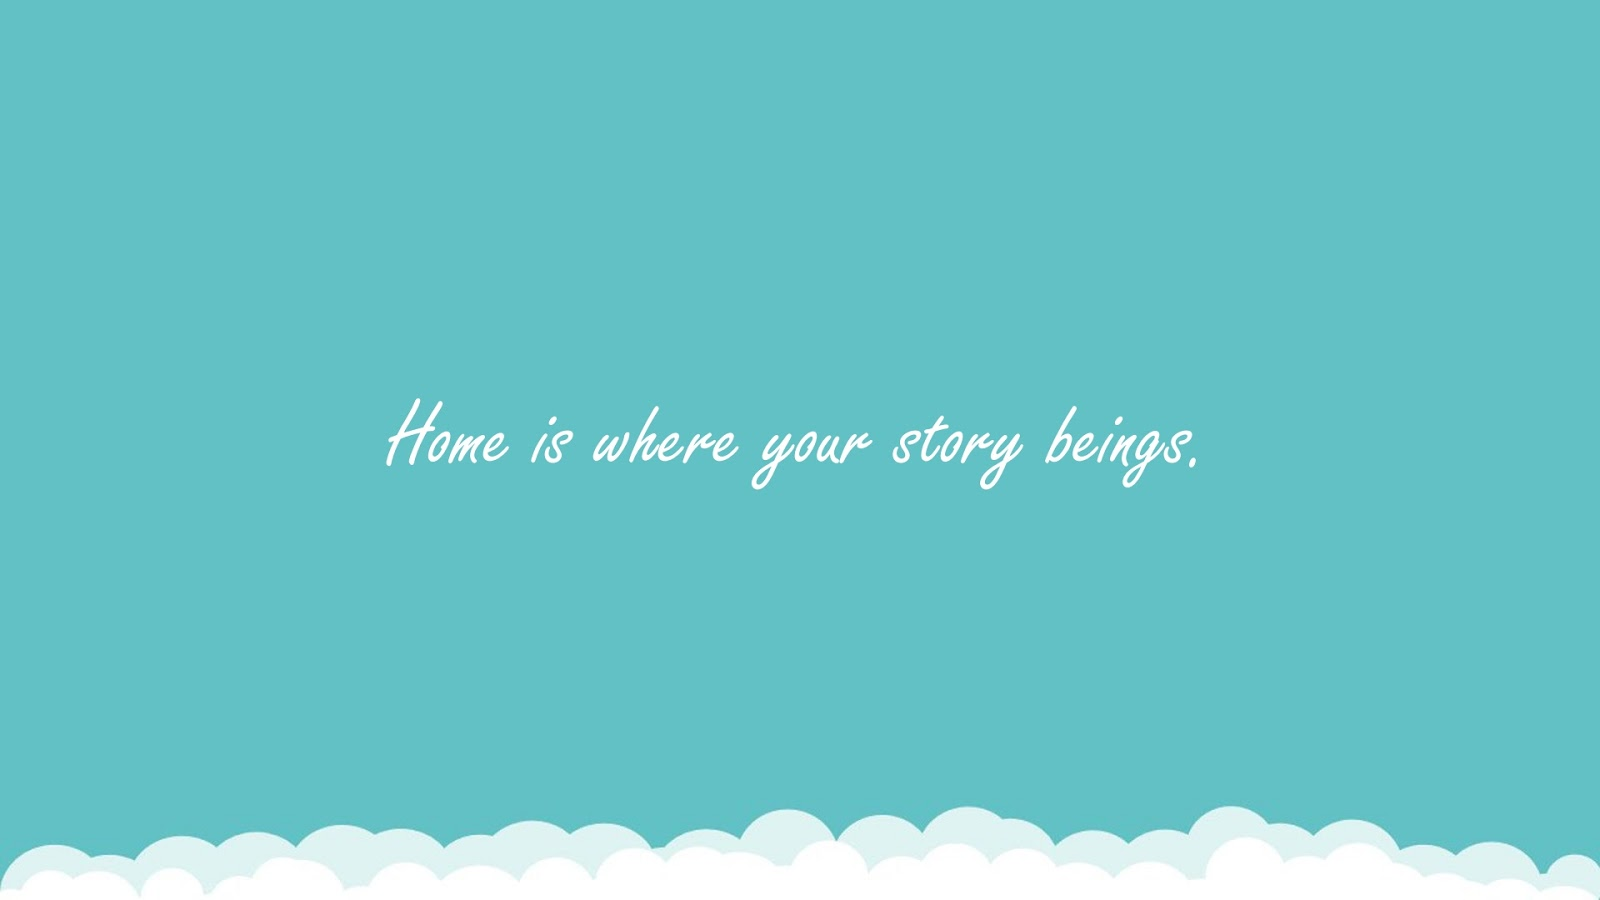 Home is where your story beings.FALSE